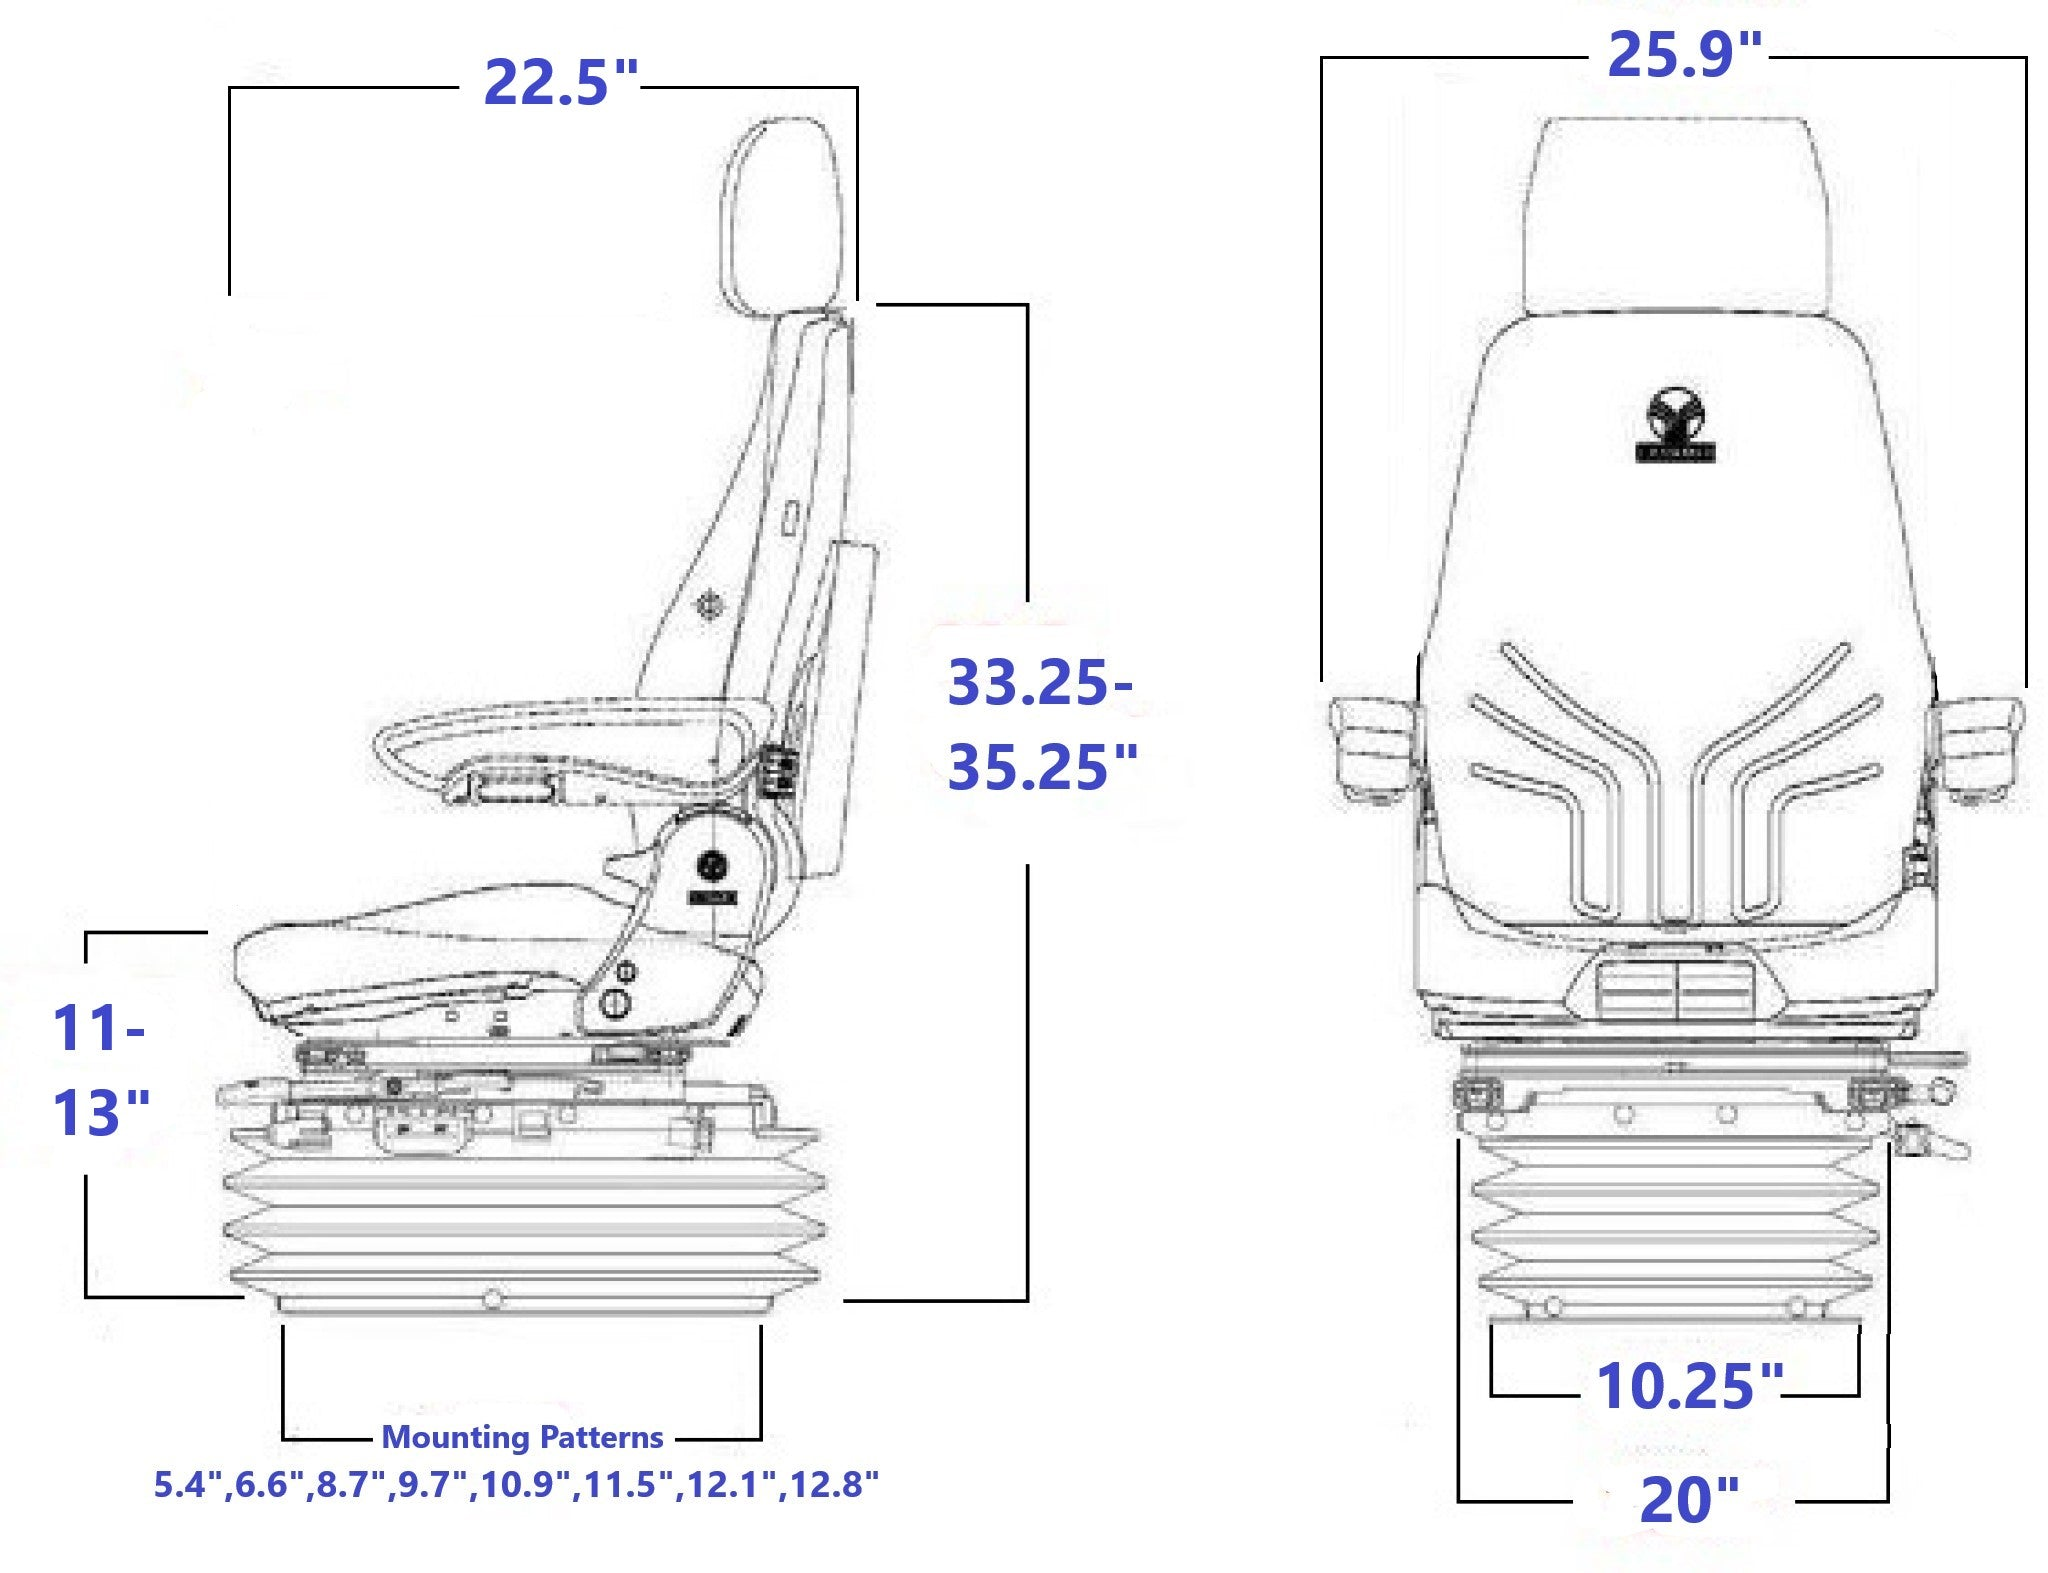 Grammer MSG85/732 Technical Drawing